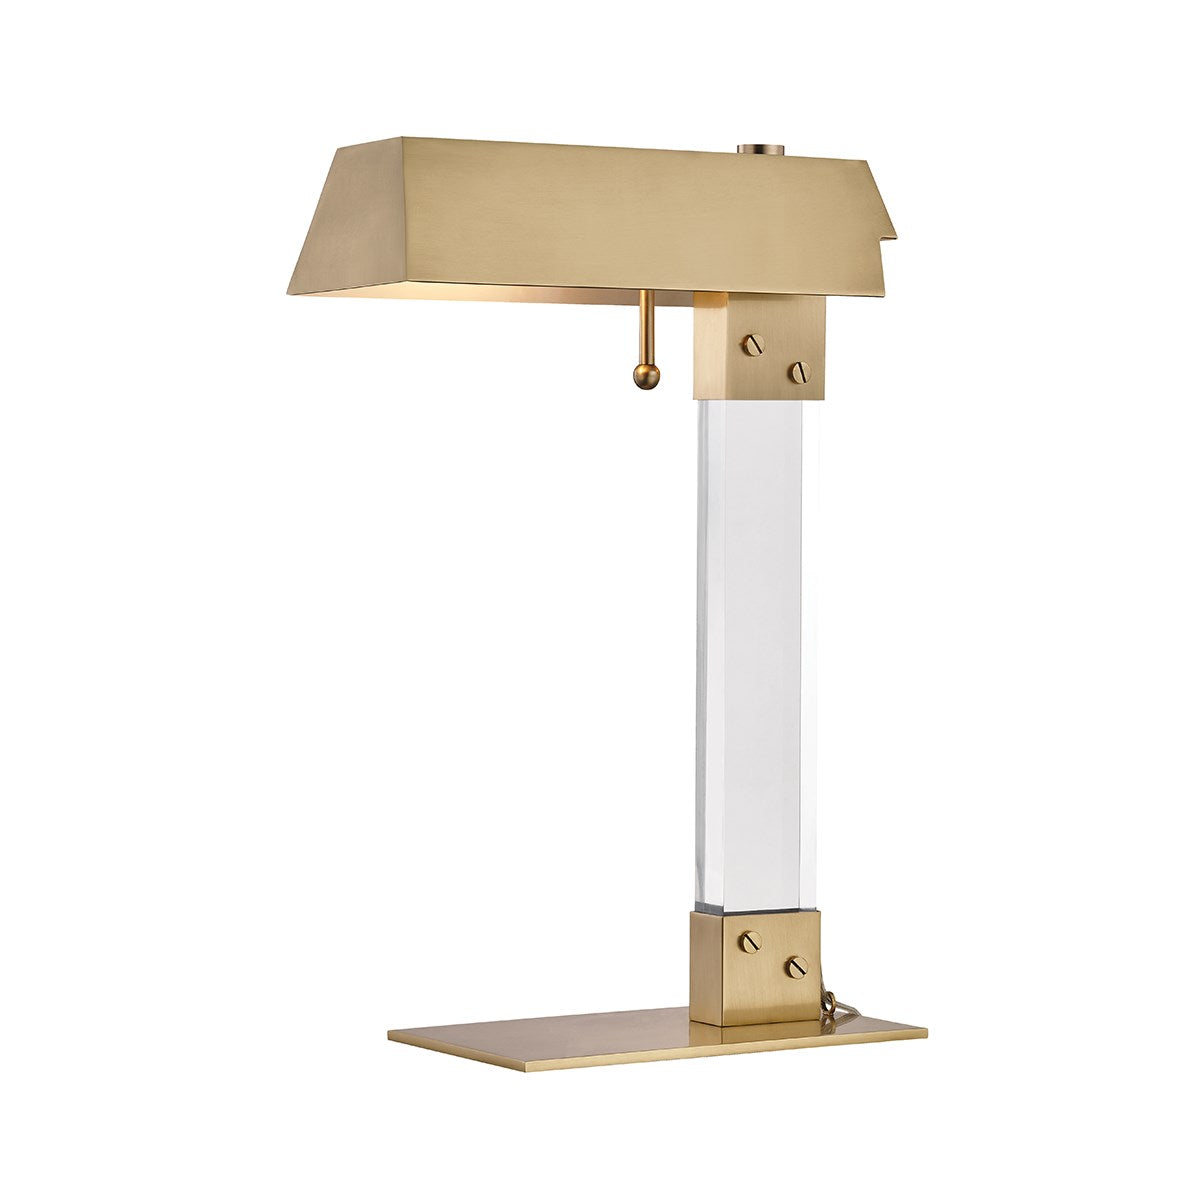 The Penman Table Lamp